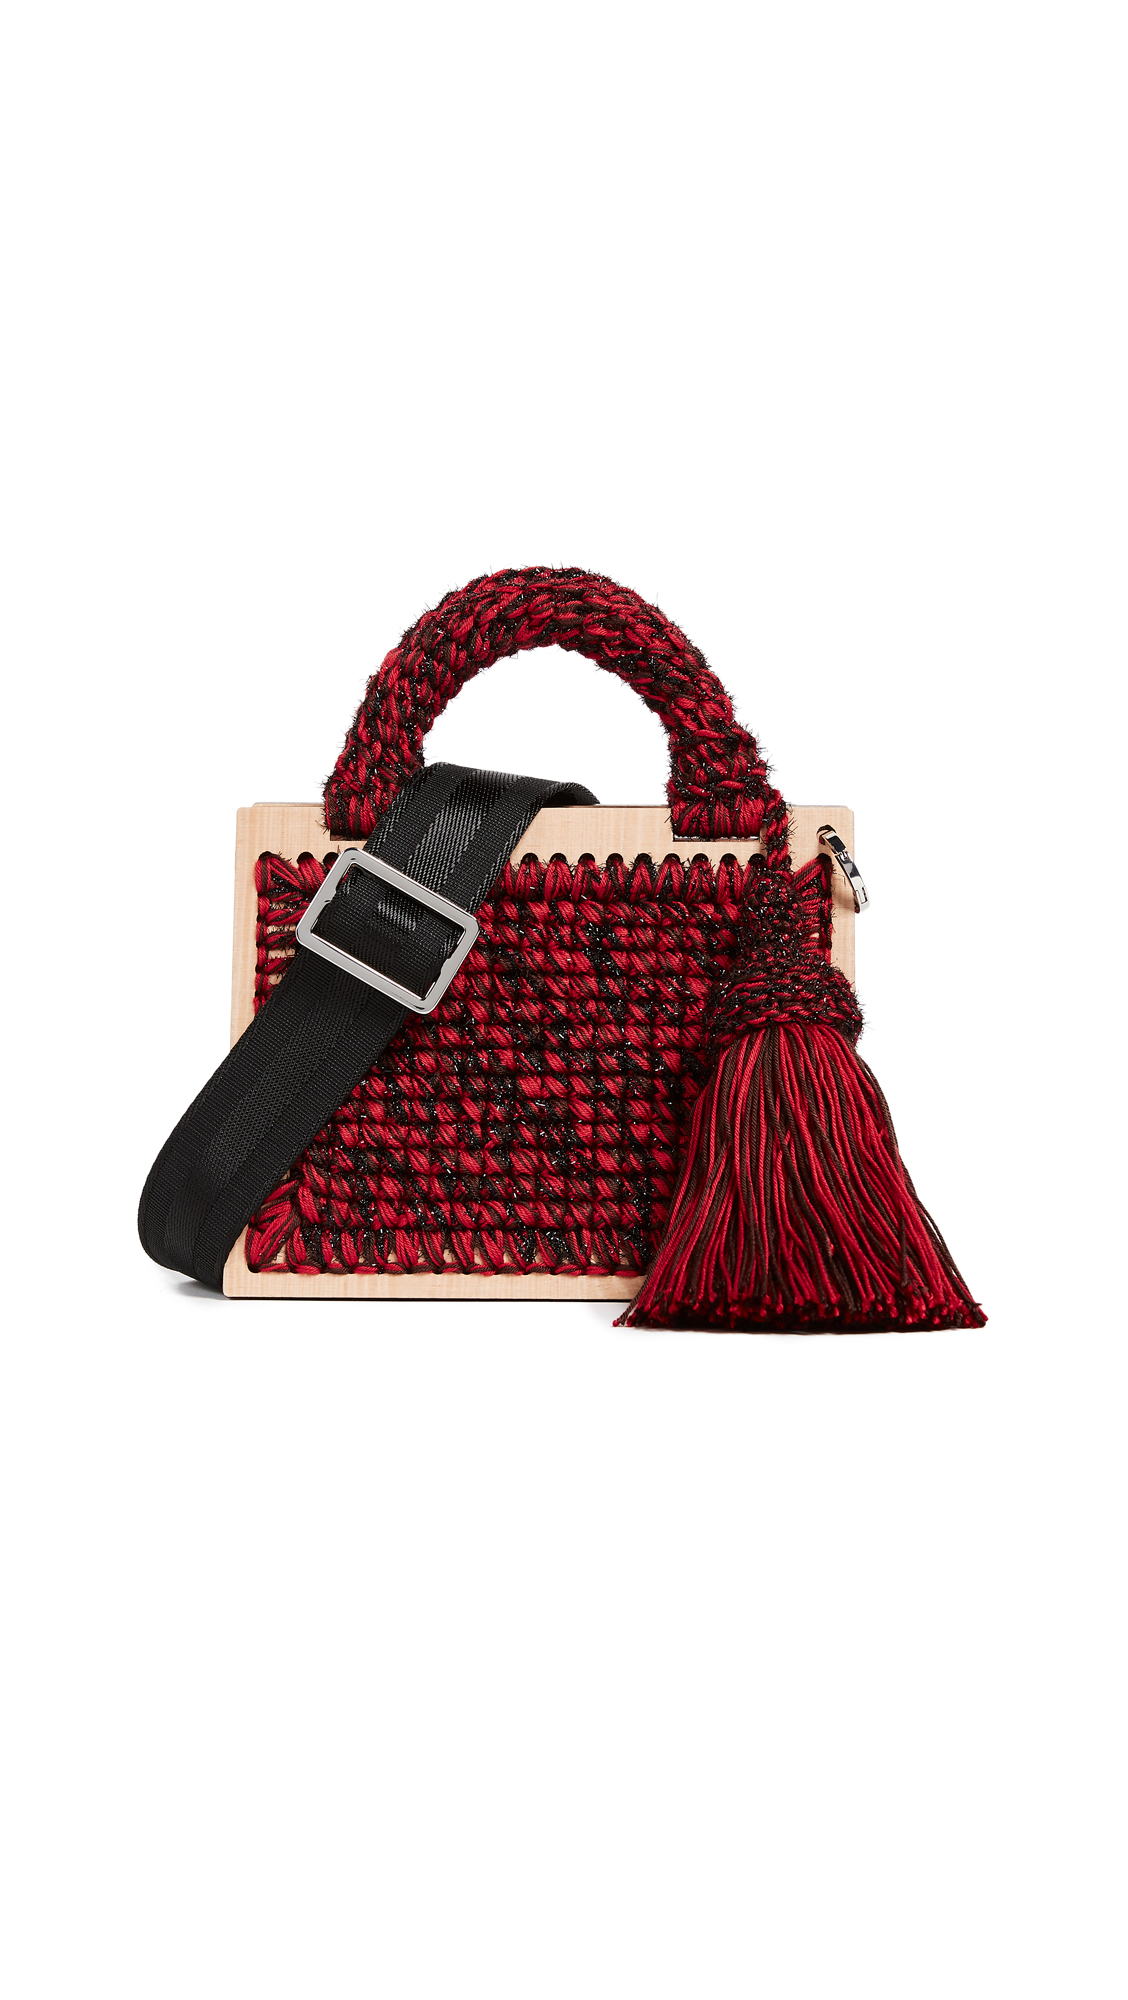 0711 Madame Tardieu St. Barts Purse - Red/Brown/Black